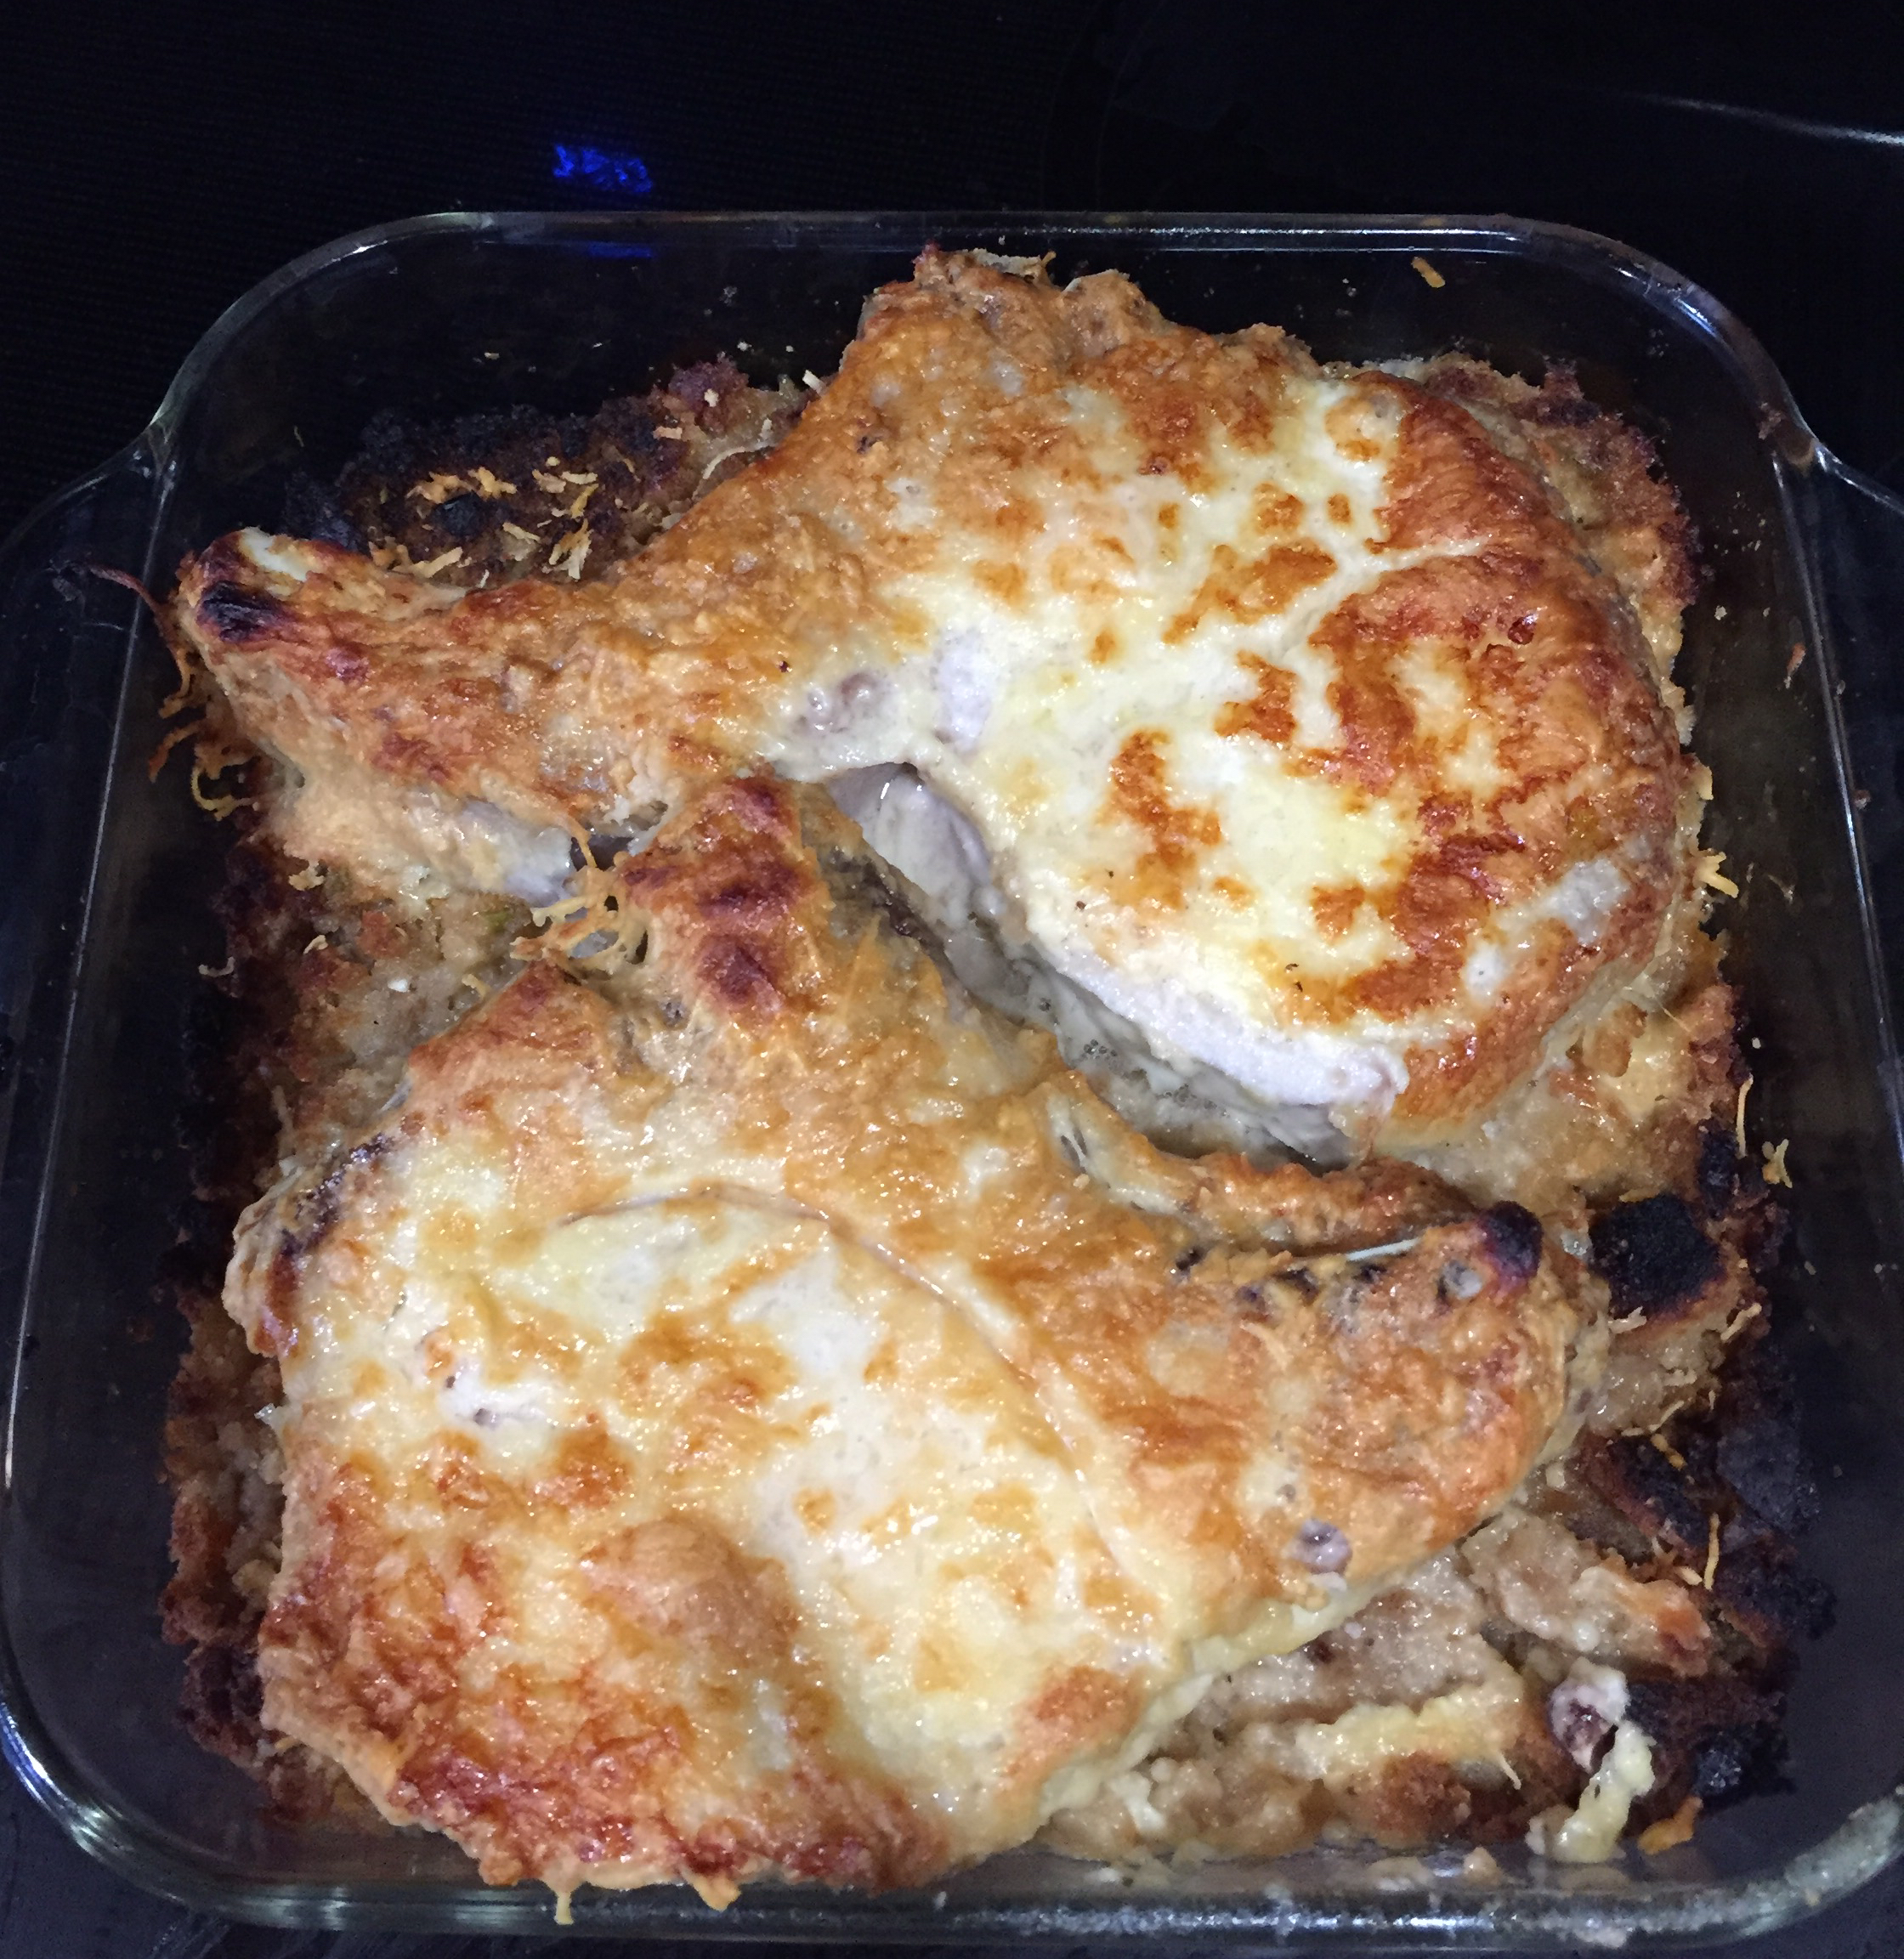 Oven-Baked Stuffed Pork Chops Recipe | Allrecipes